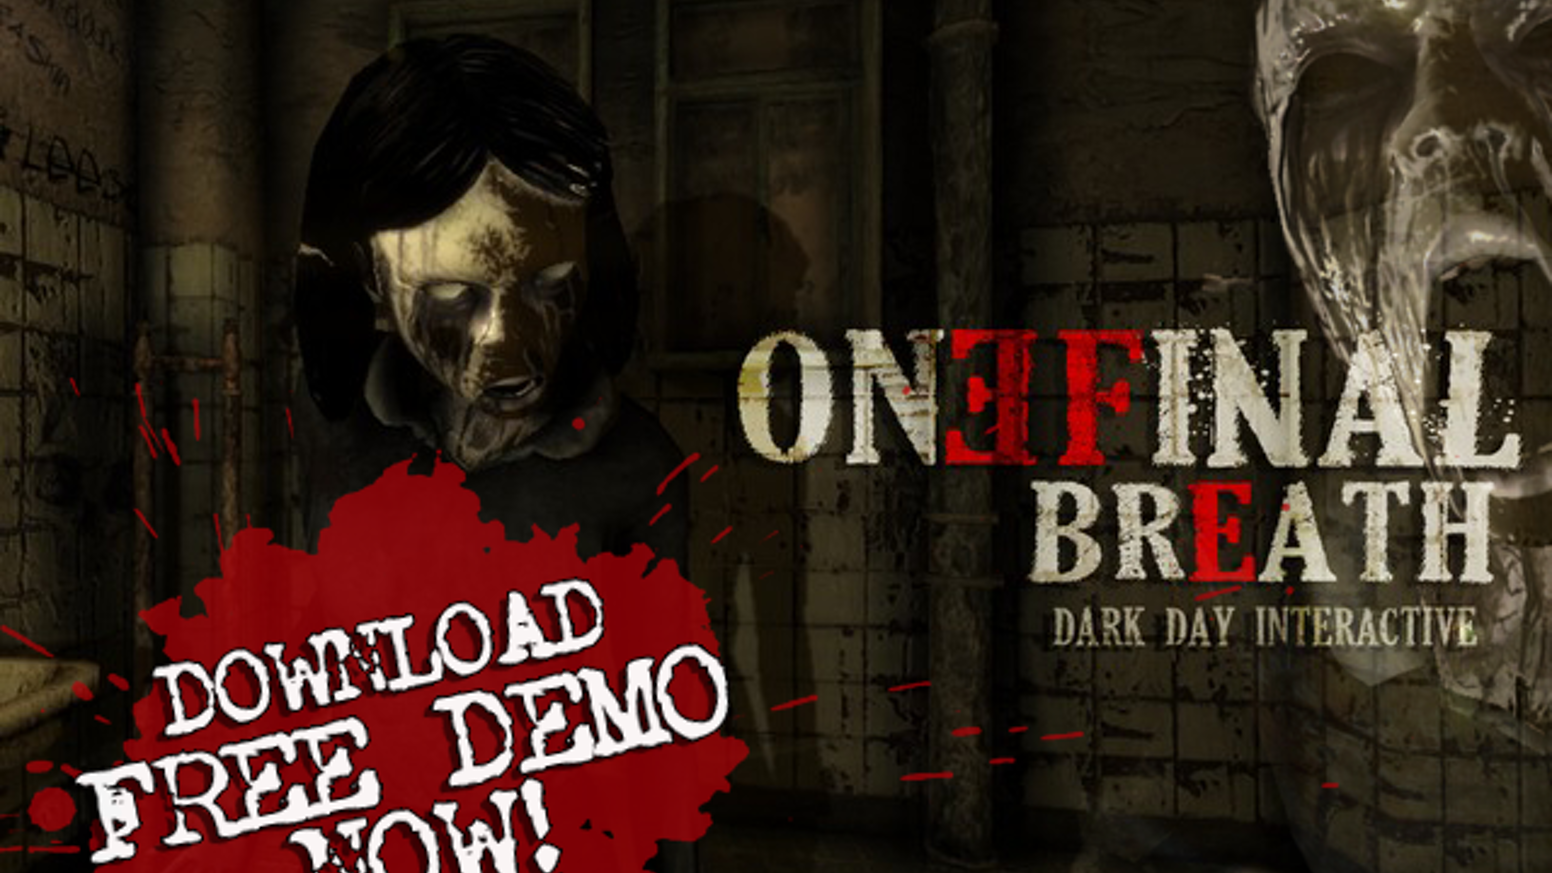 Track down your daughter in the condemned boarding school in this green lit HORROR FPS, (FREE DEMO OUT NOW!)